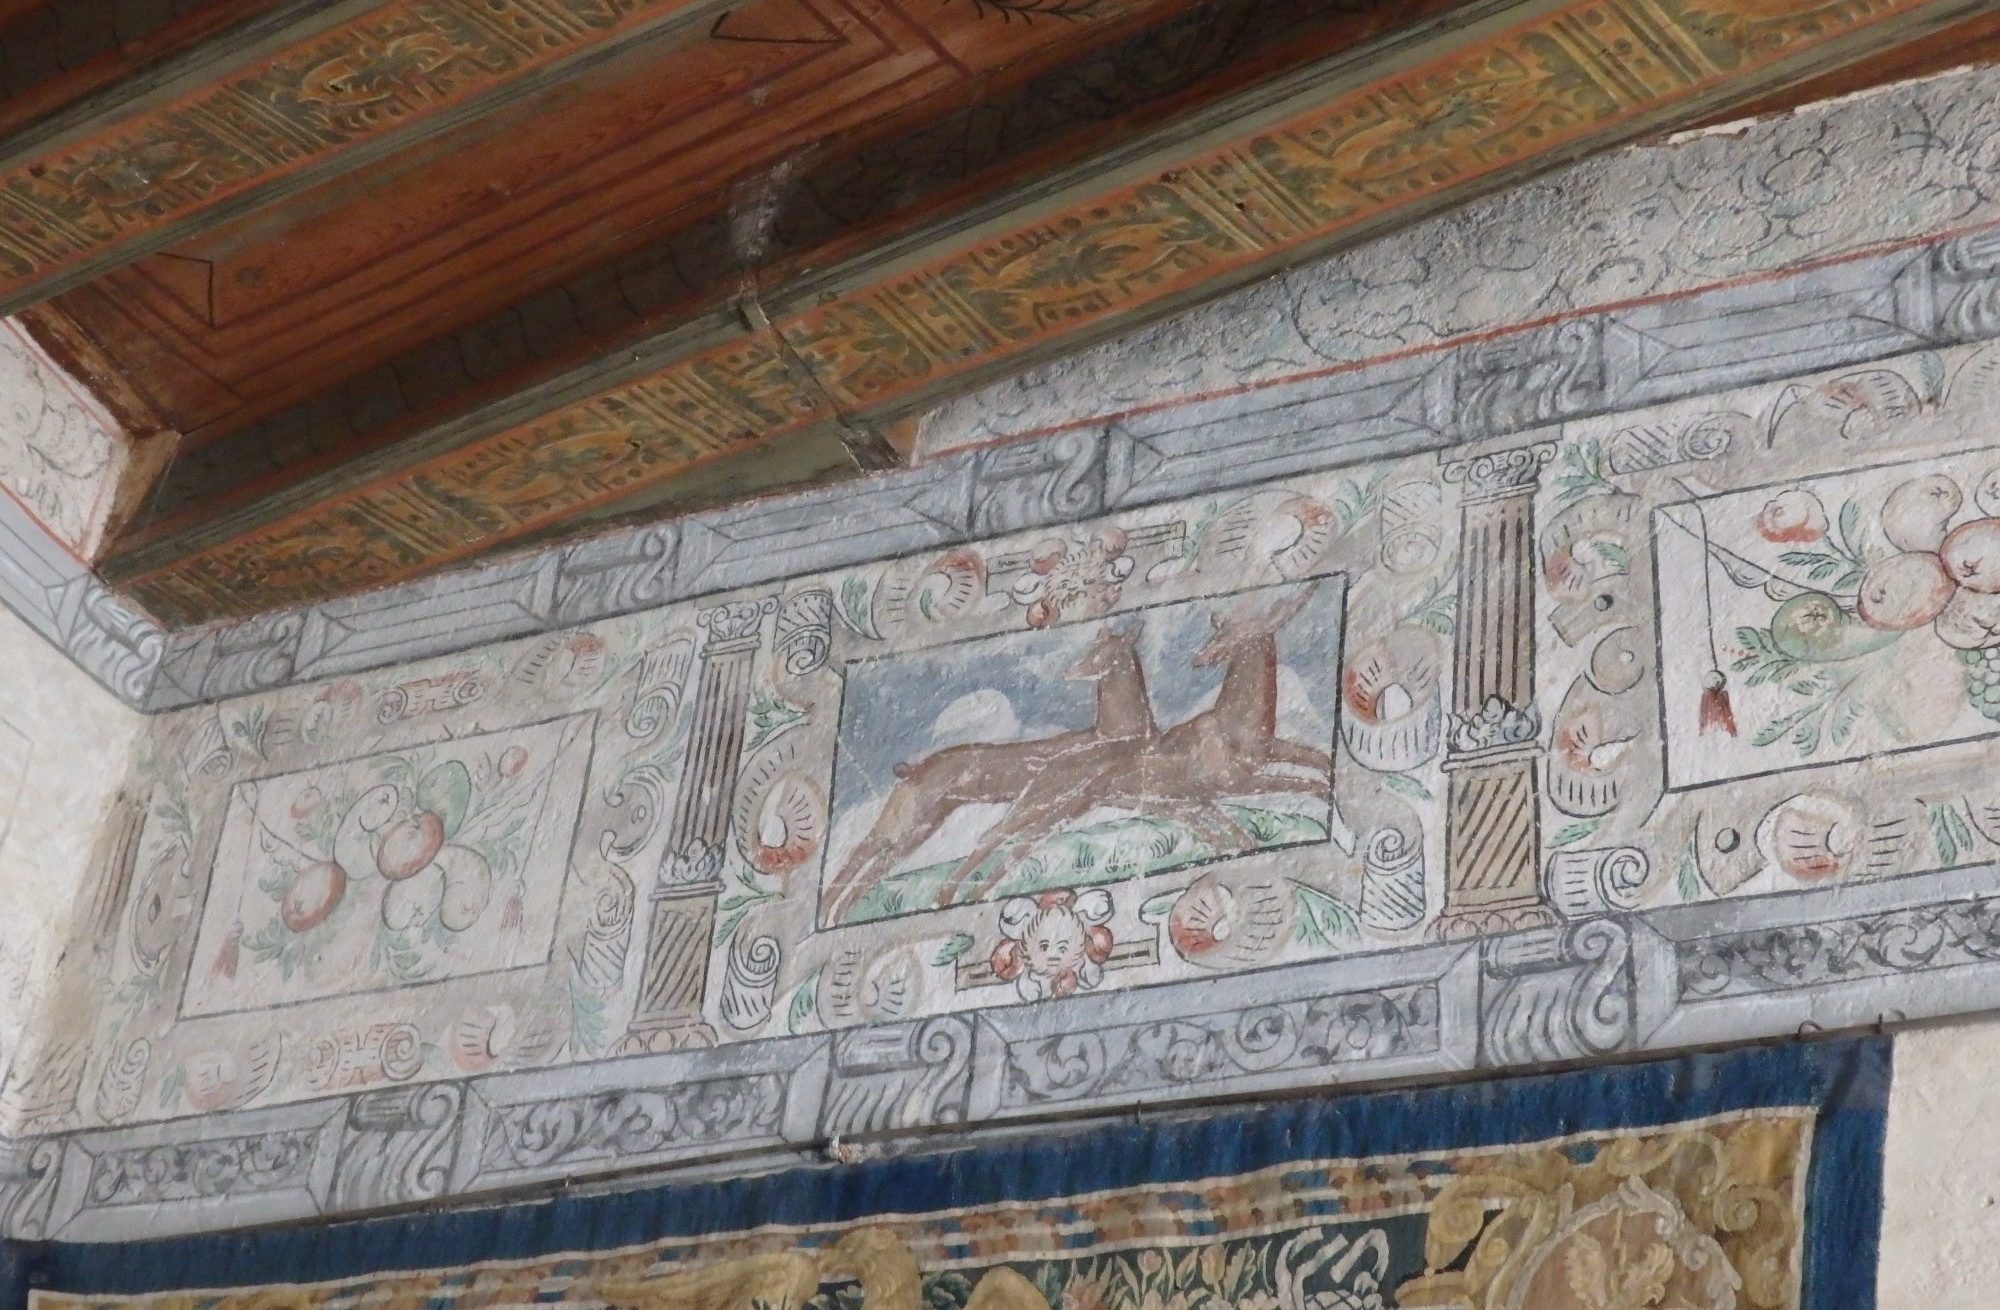 Here you can see a bit of the original 16th-century wall and ceiling painting in Gripsholm Castle, Mariefred, Sweden